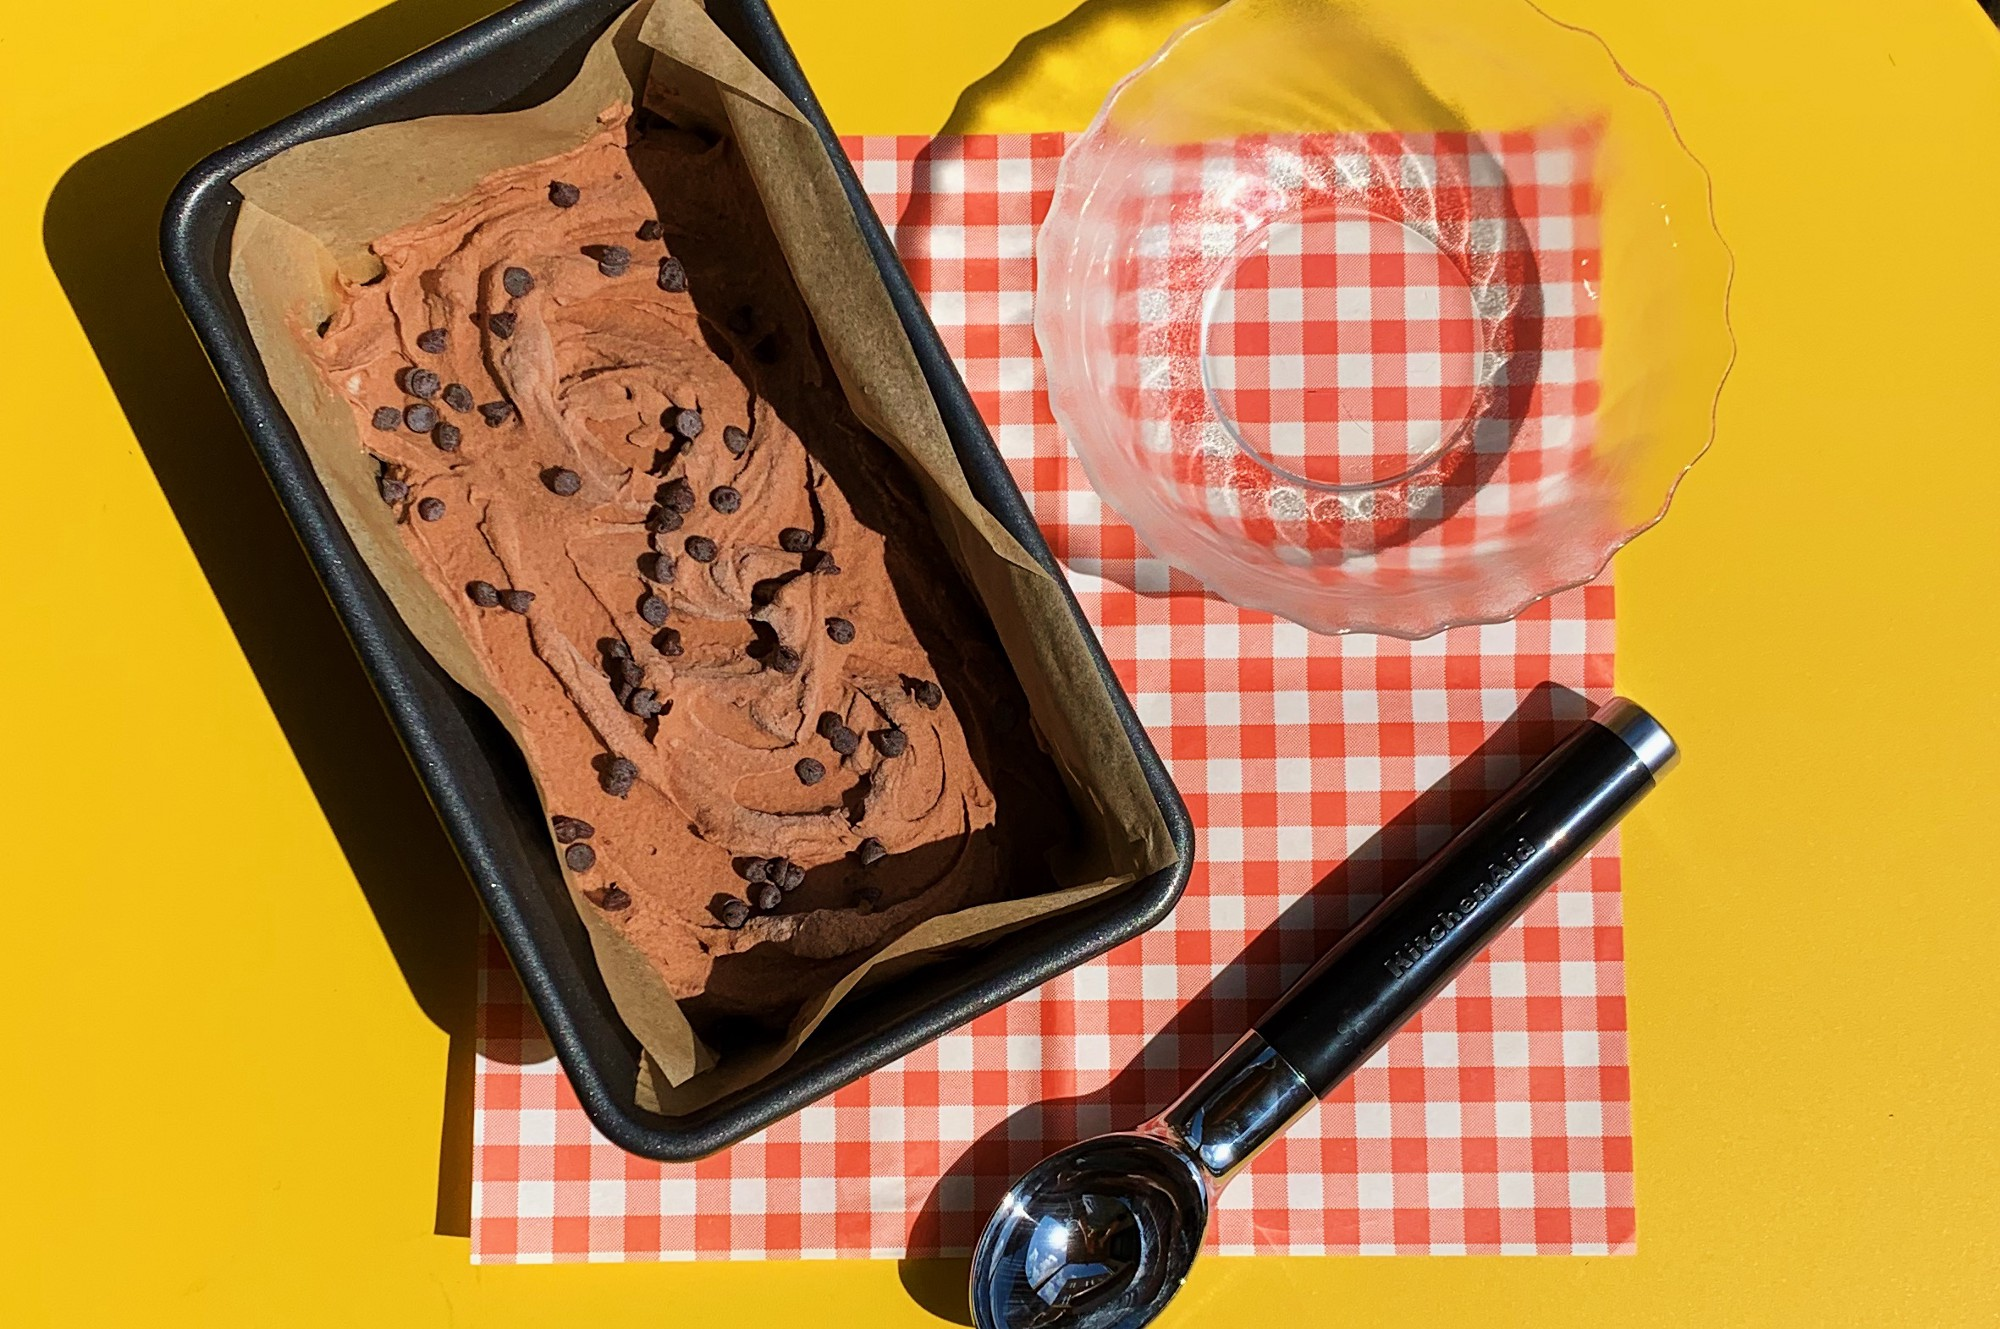 A loaf pan lined with parchment paper and filled with chocolate chocolate chip ice cream next to an ice cream scoop & a dish.